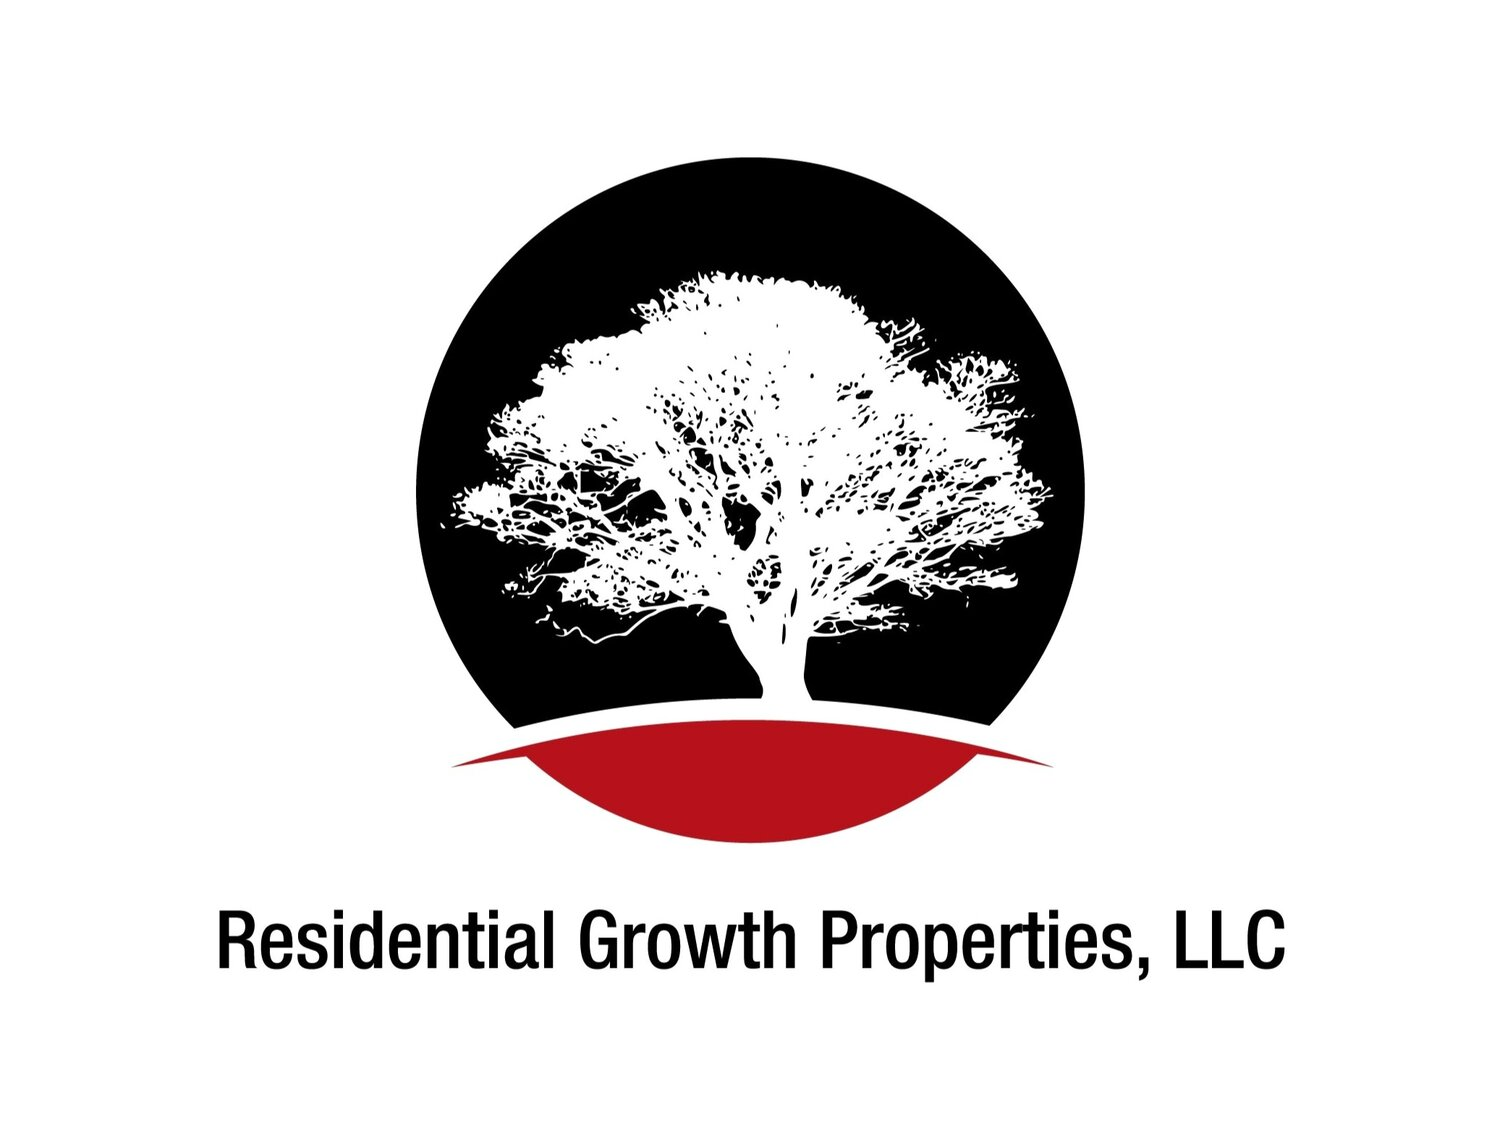 Residential Growth Properties